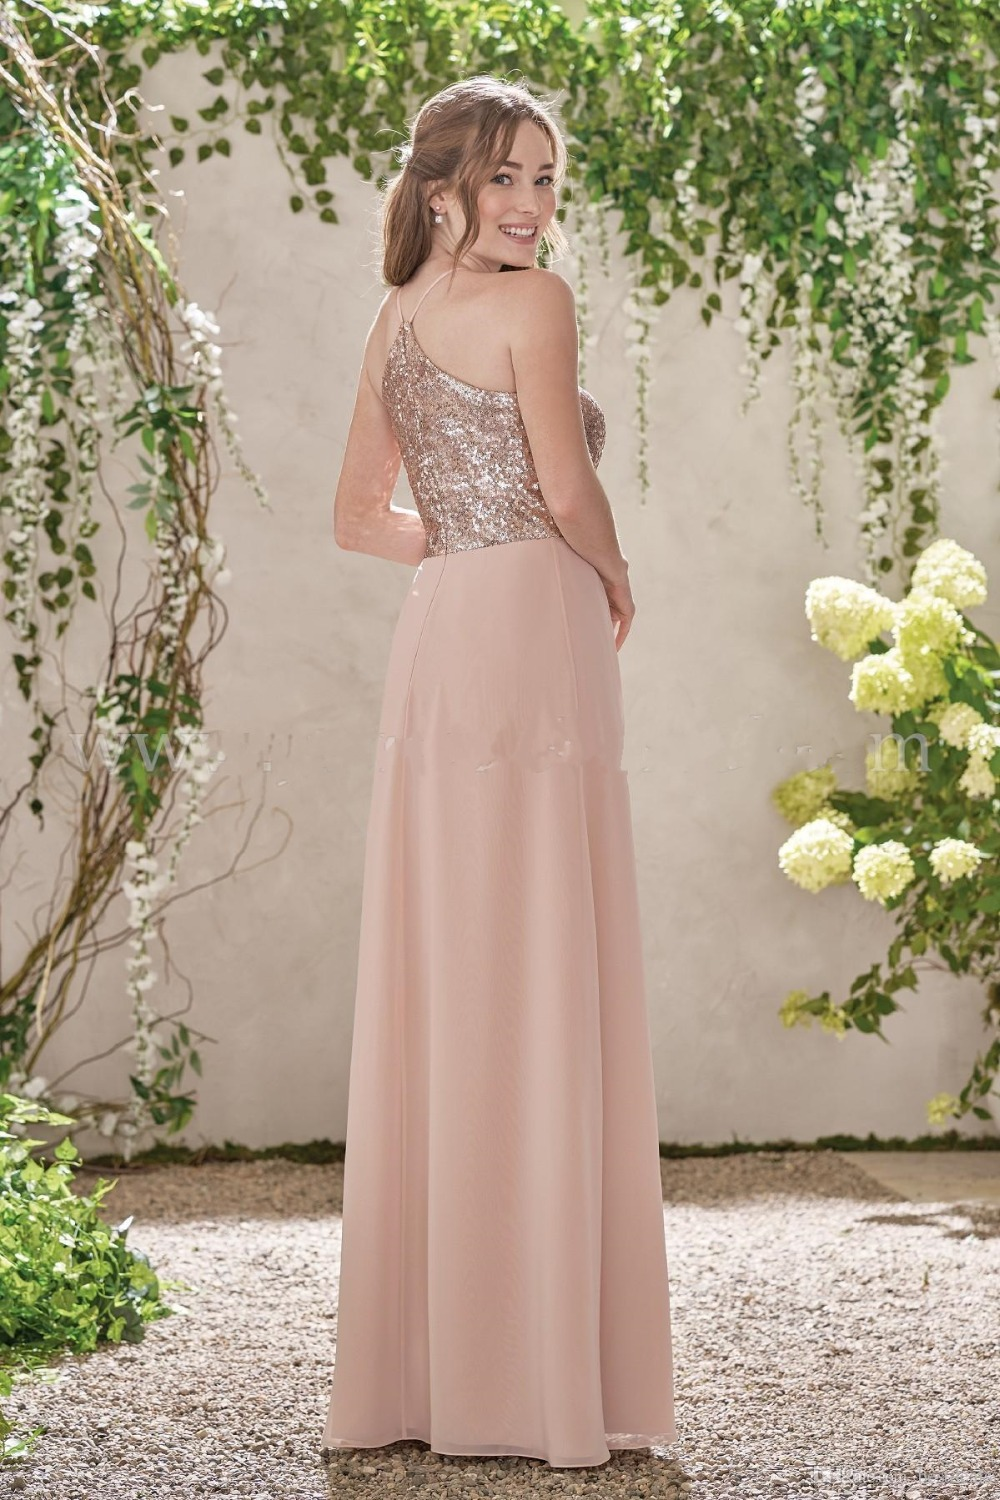 2017-new-rose-gold-bridesmaid-dresses-a-line-spaghetti-backless-sequins-chiffon-cheap-long-beach-wedding-gust-dress-maid-of-honor-gowns (2)